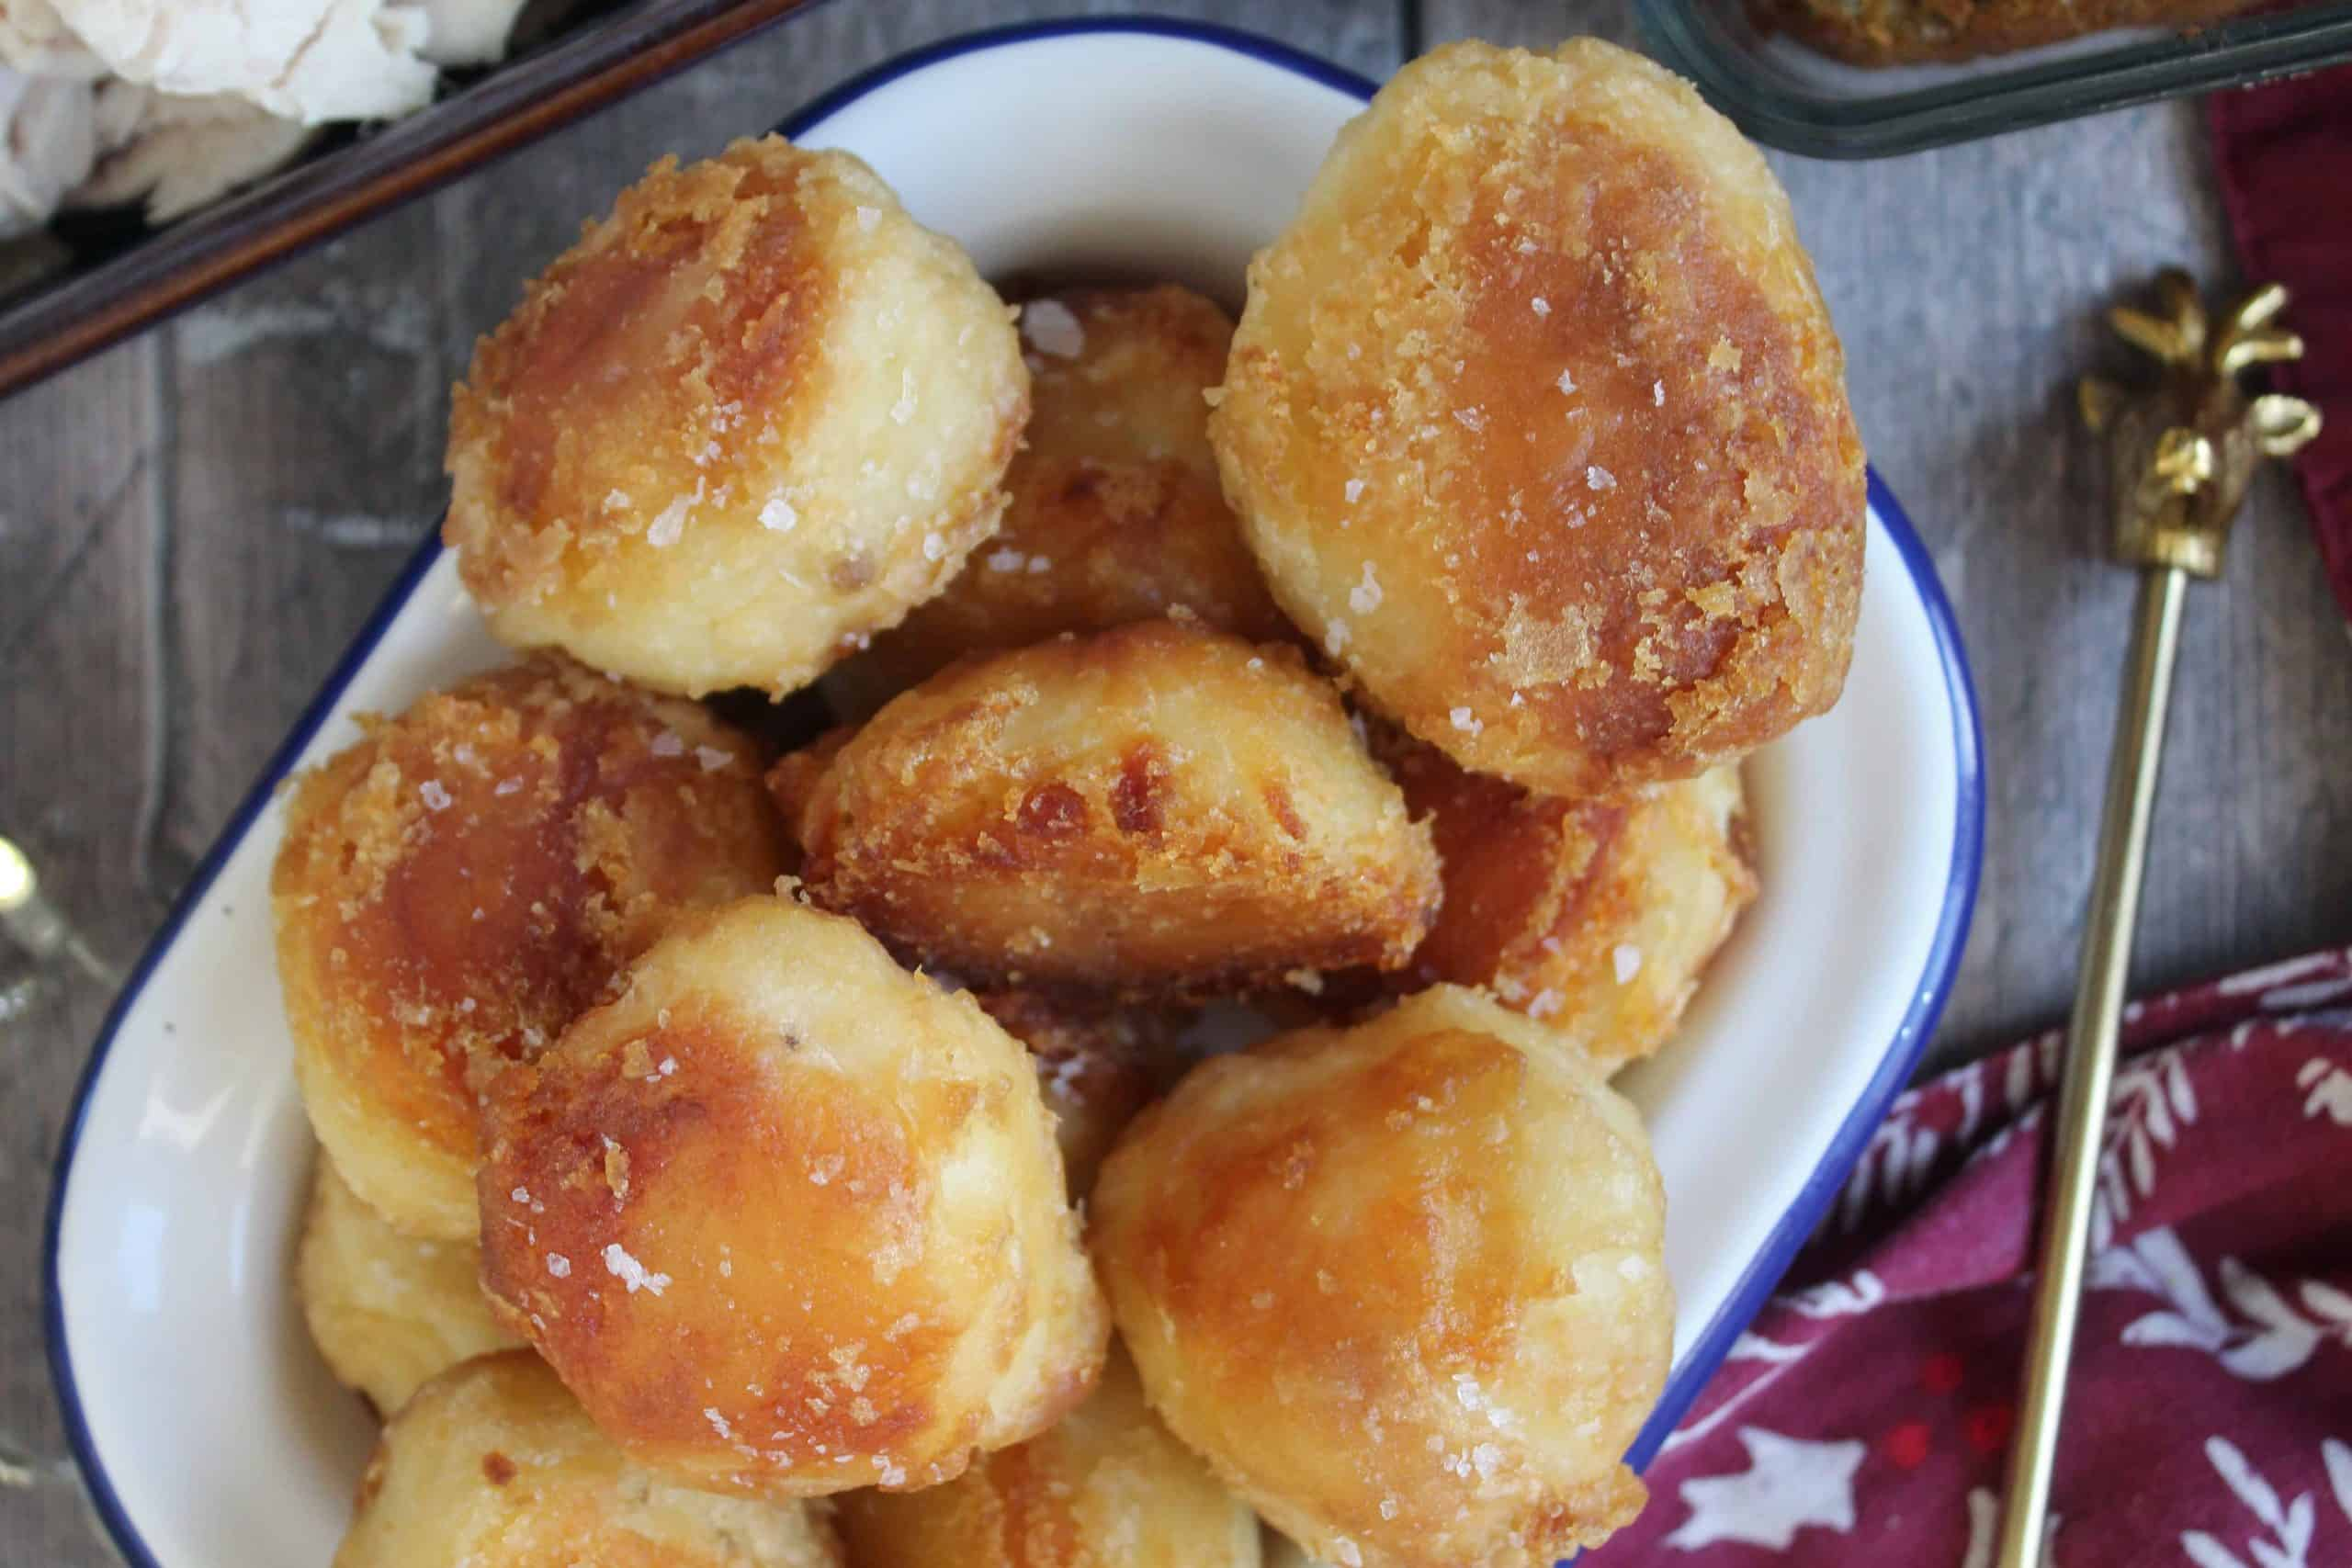 Gluten free ROAST POTATOES RECIPE - Christmas dinner side dish